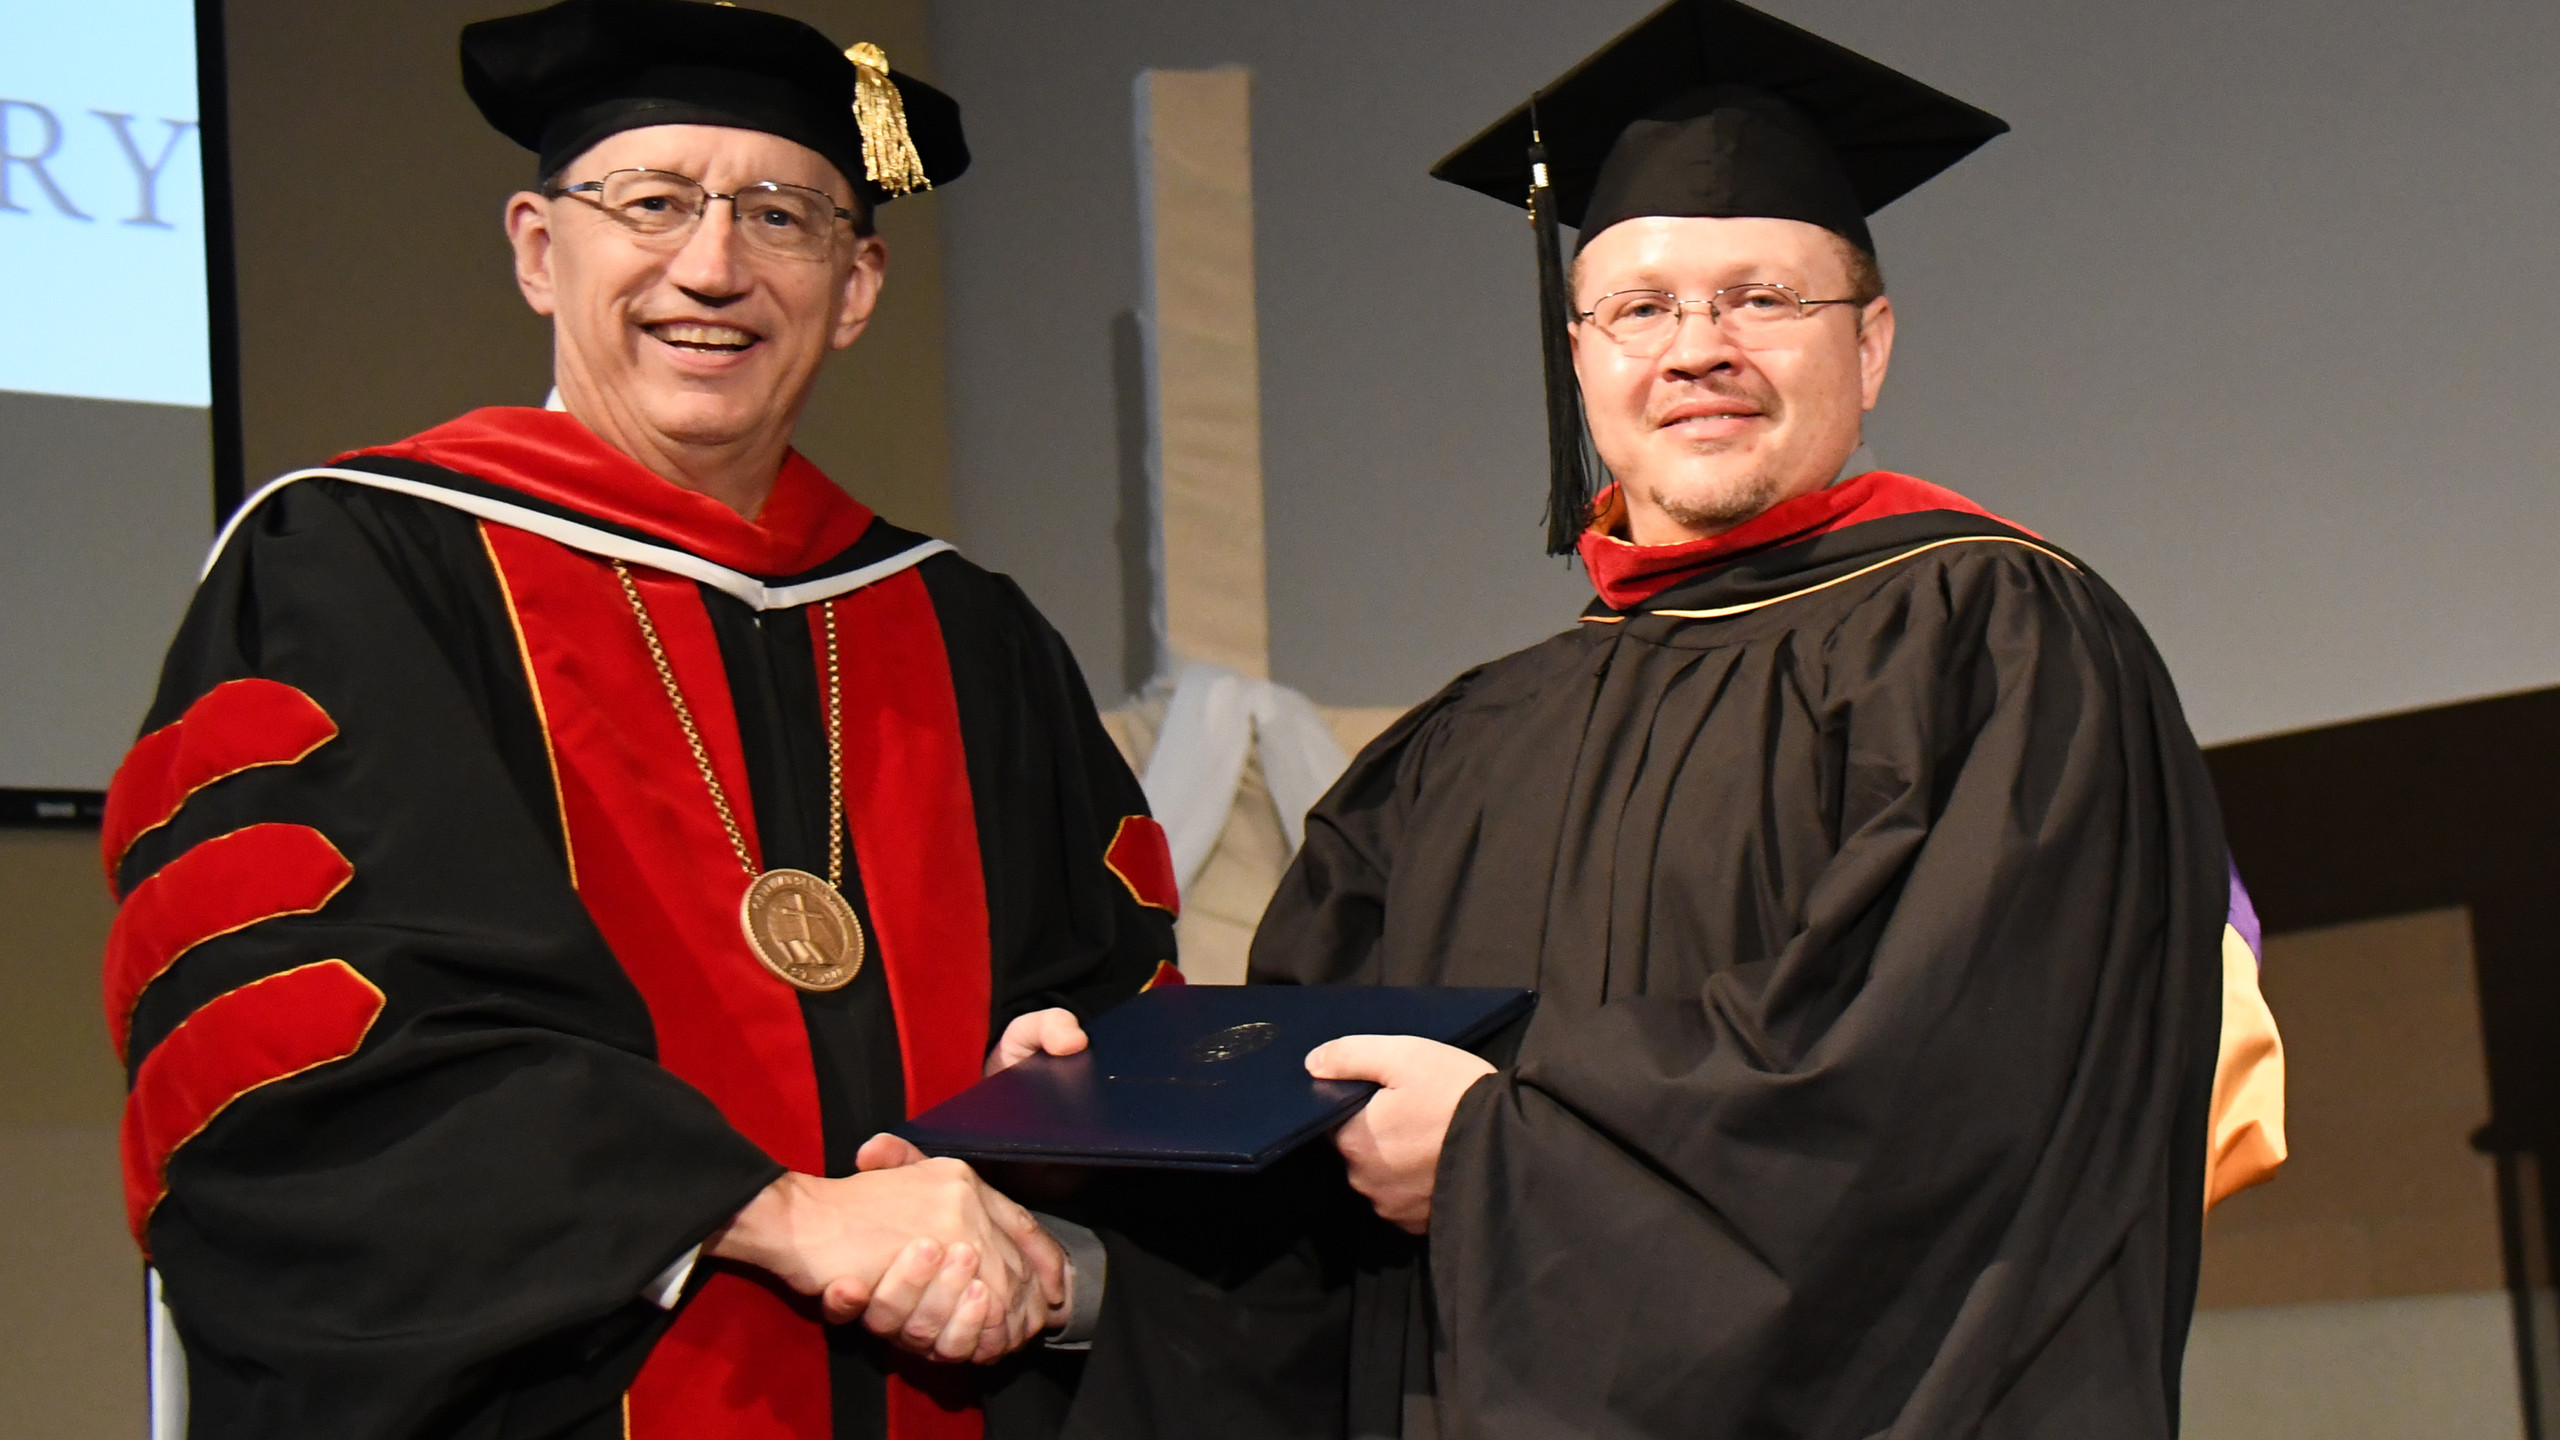 Finally! Mark receiving his diploma after completing a Master of Divinity degree with a concentration in Biblical Studies.